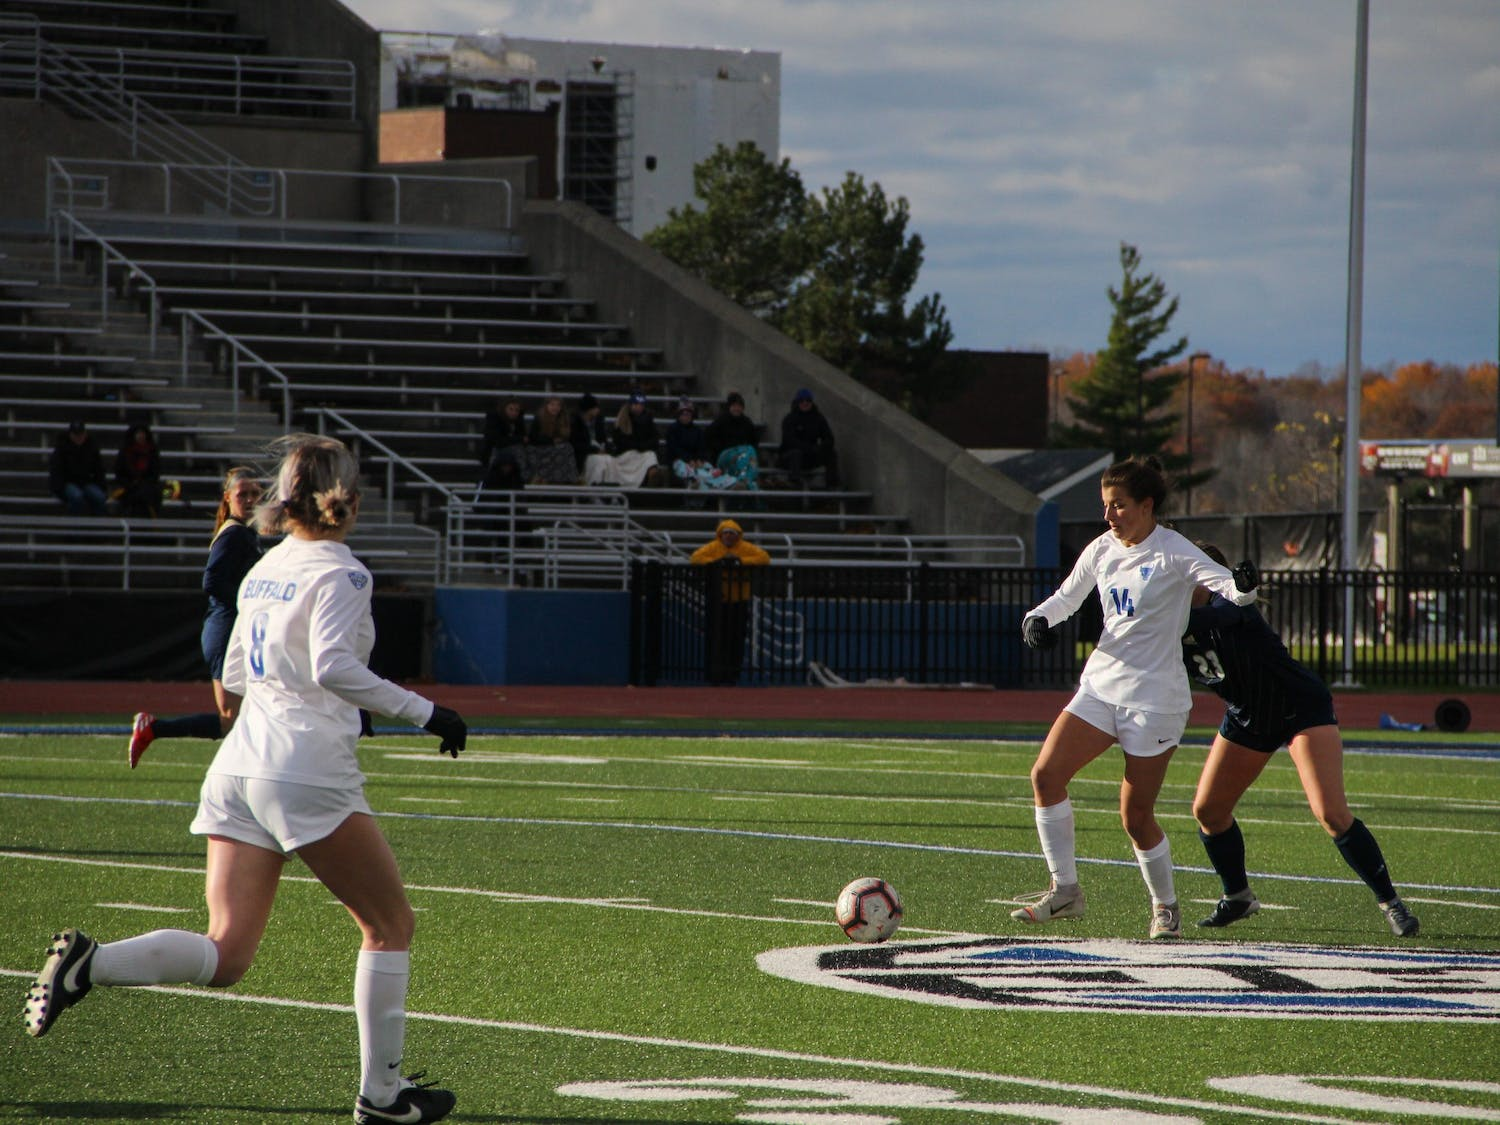 Sophomore Taylor Caridi secures the ball against a defender at Sunday's soccer game.